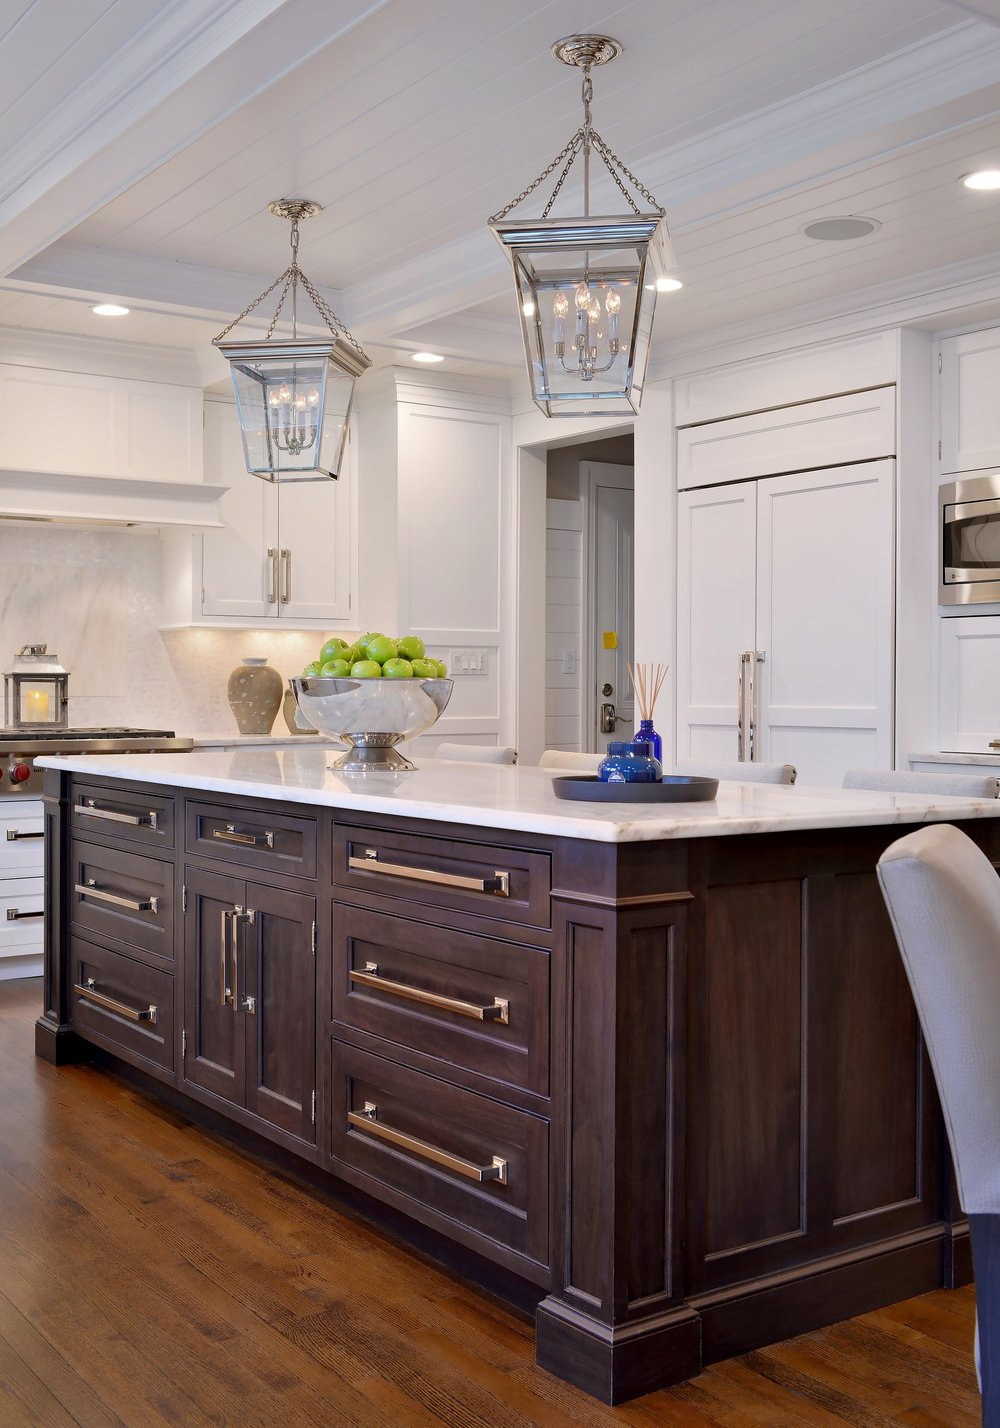 Transitional style kitchen with wooden built in cabinet on kitchen island